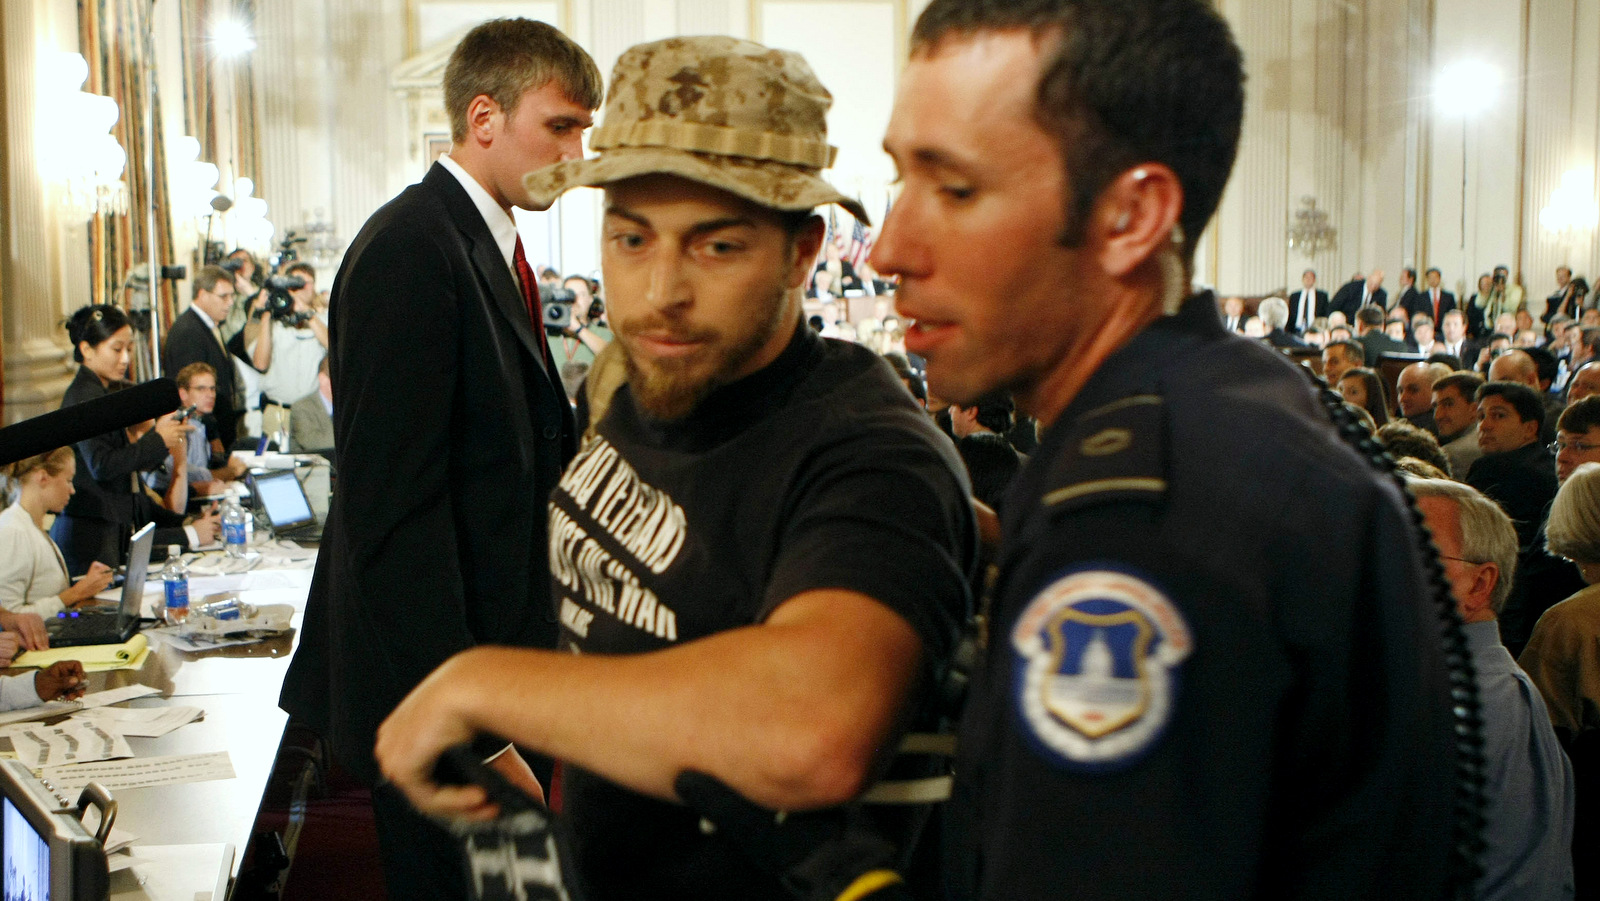 Former Marine Adam Kokesh is detained by Capitol Hill Police on Capitol Hill in Washington, Monday, Sept. 10, 2007, as Gen. David Petraeus and U.S. Ambassador to Iraq Ryan Crocker testified before the House Armed Services Committee hearing on the future course of the war in Iraq. (AP Photo/Gerald Herbert)